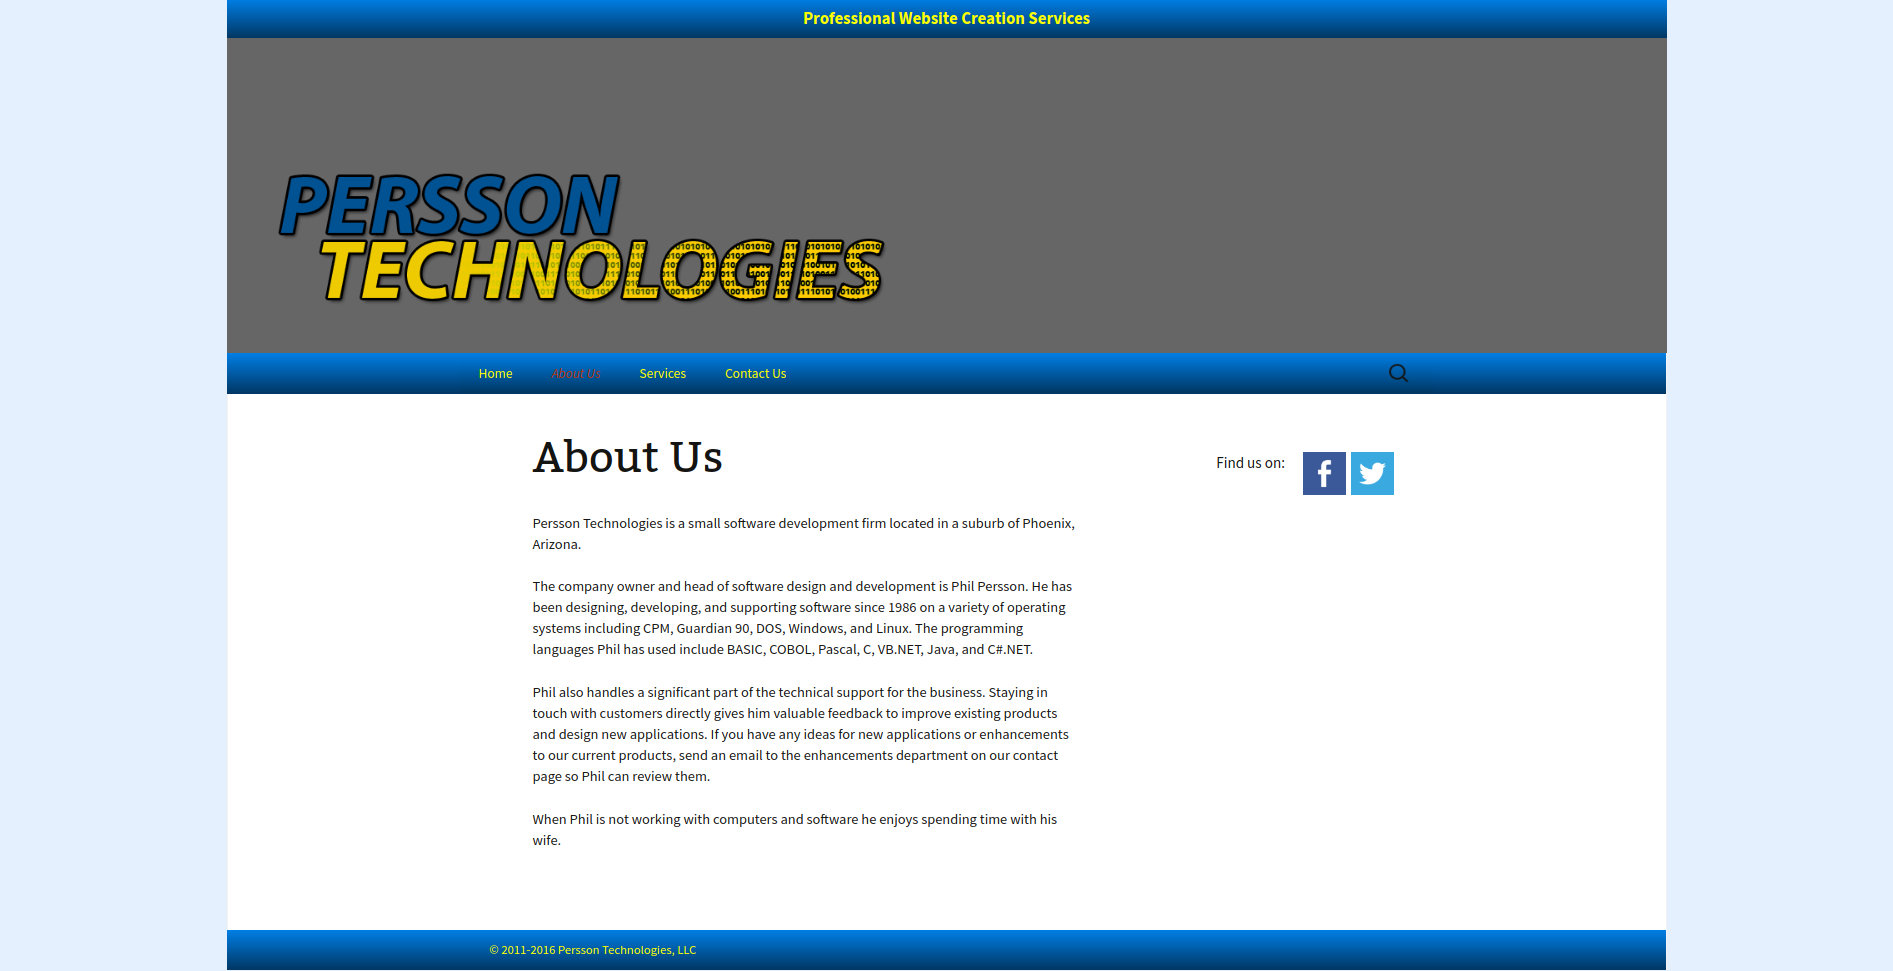 02-2016-07-30 - about us page - beginnings